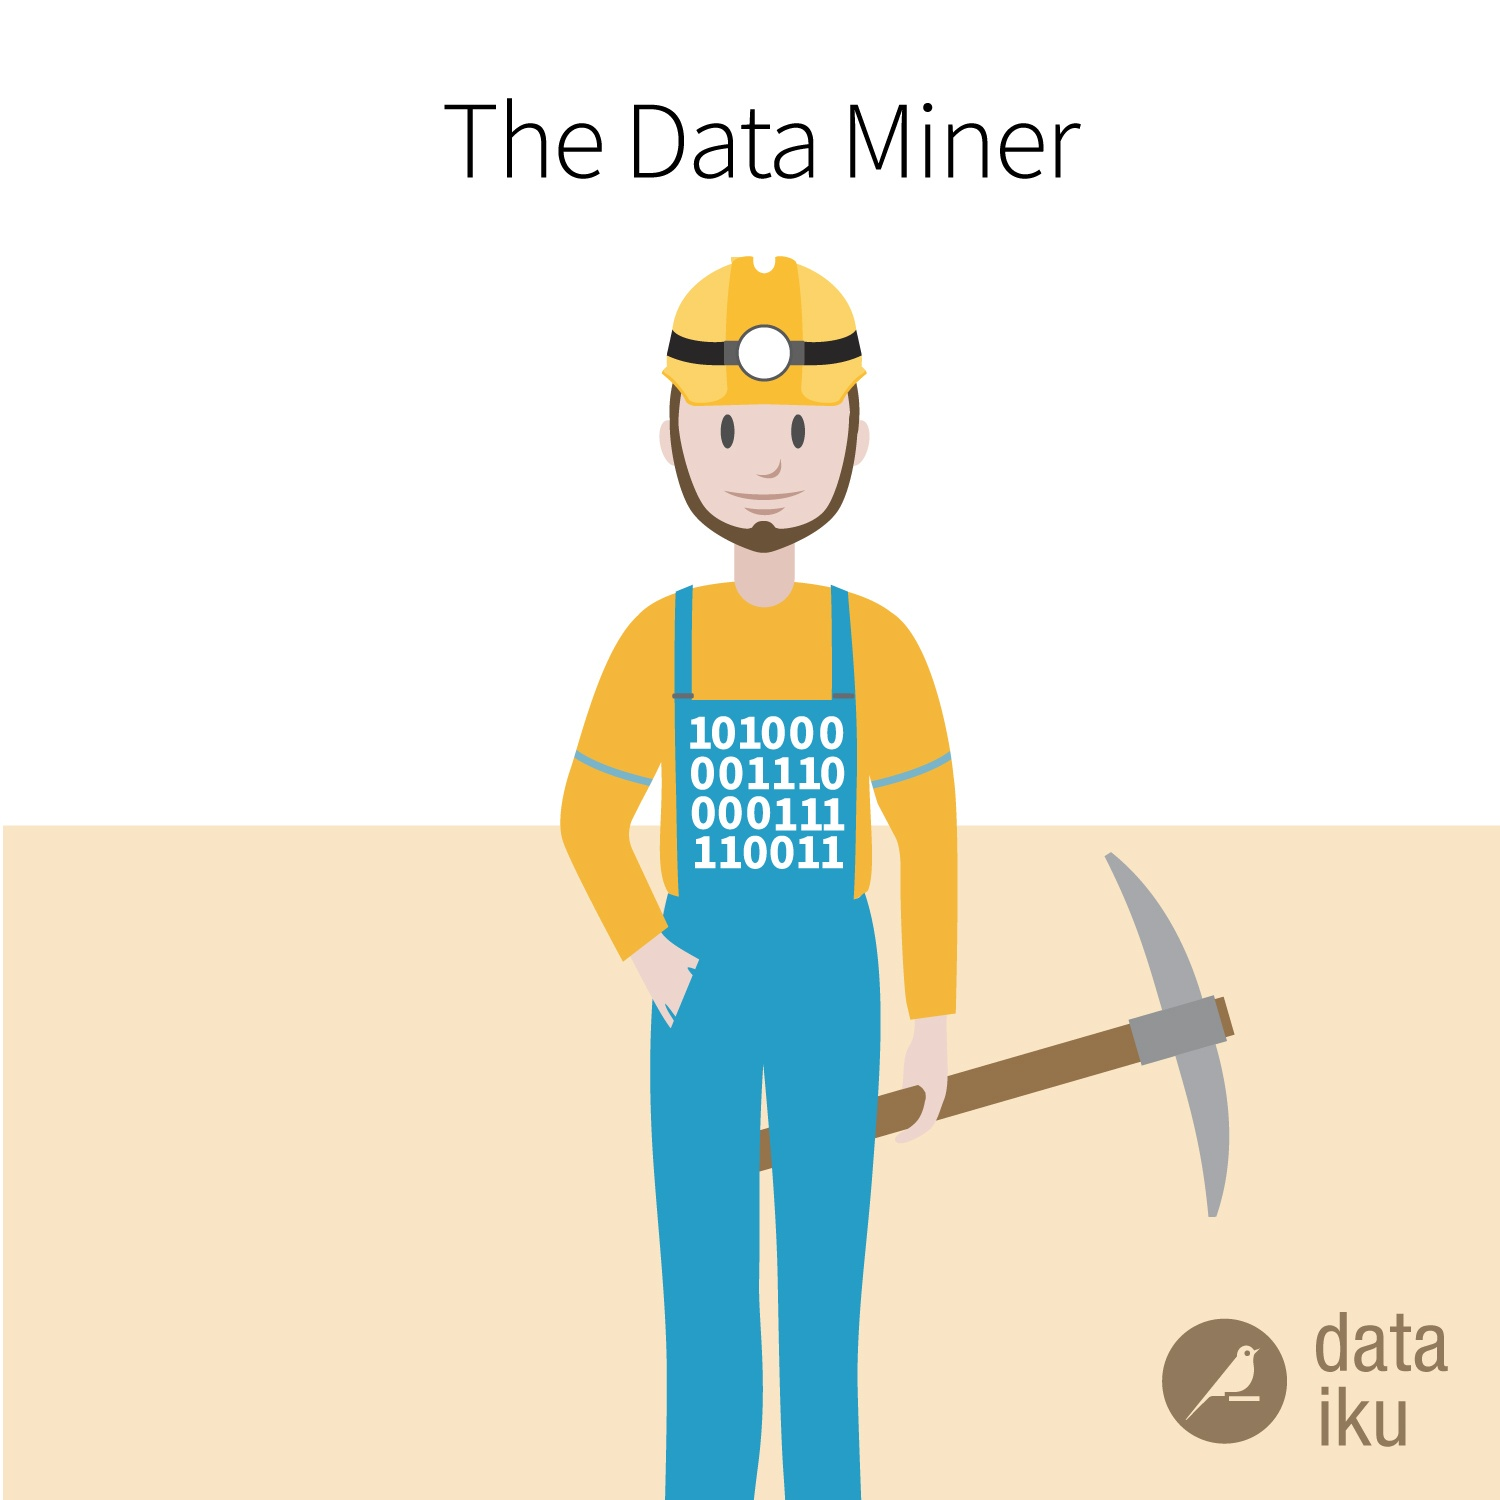 THE-DATA-MINER-Halloween-blog-posts.jpg